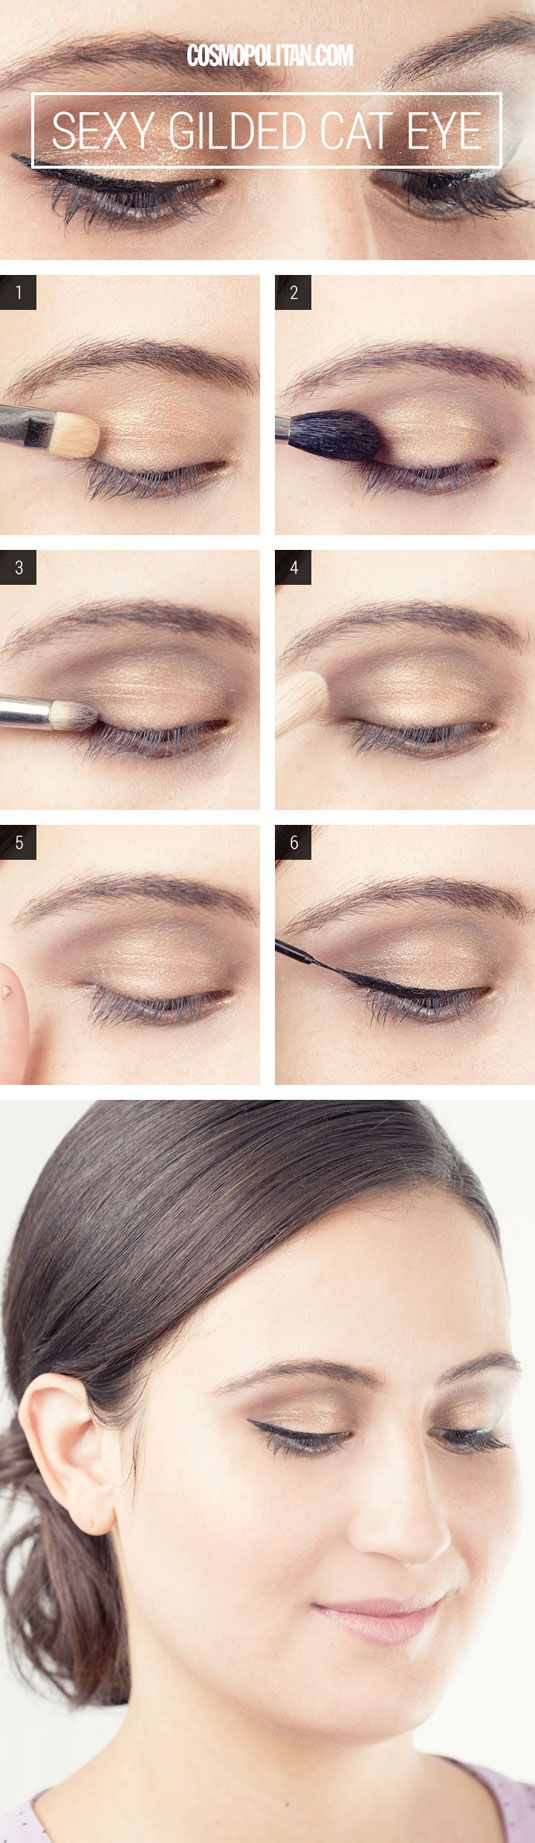 How to do sexy makeup